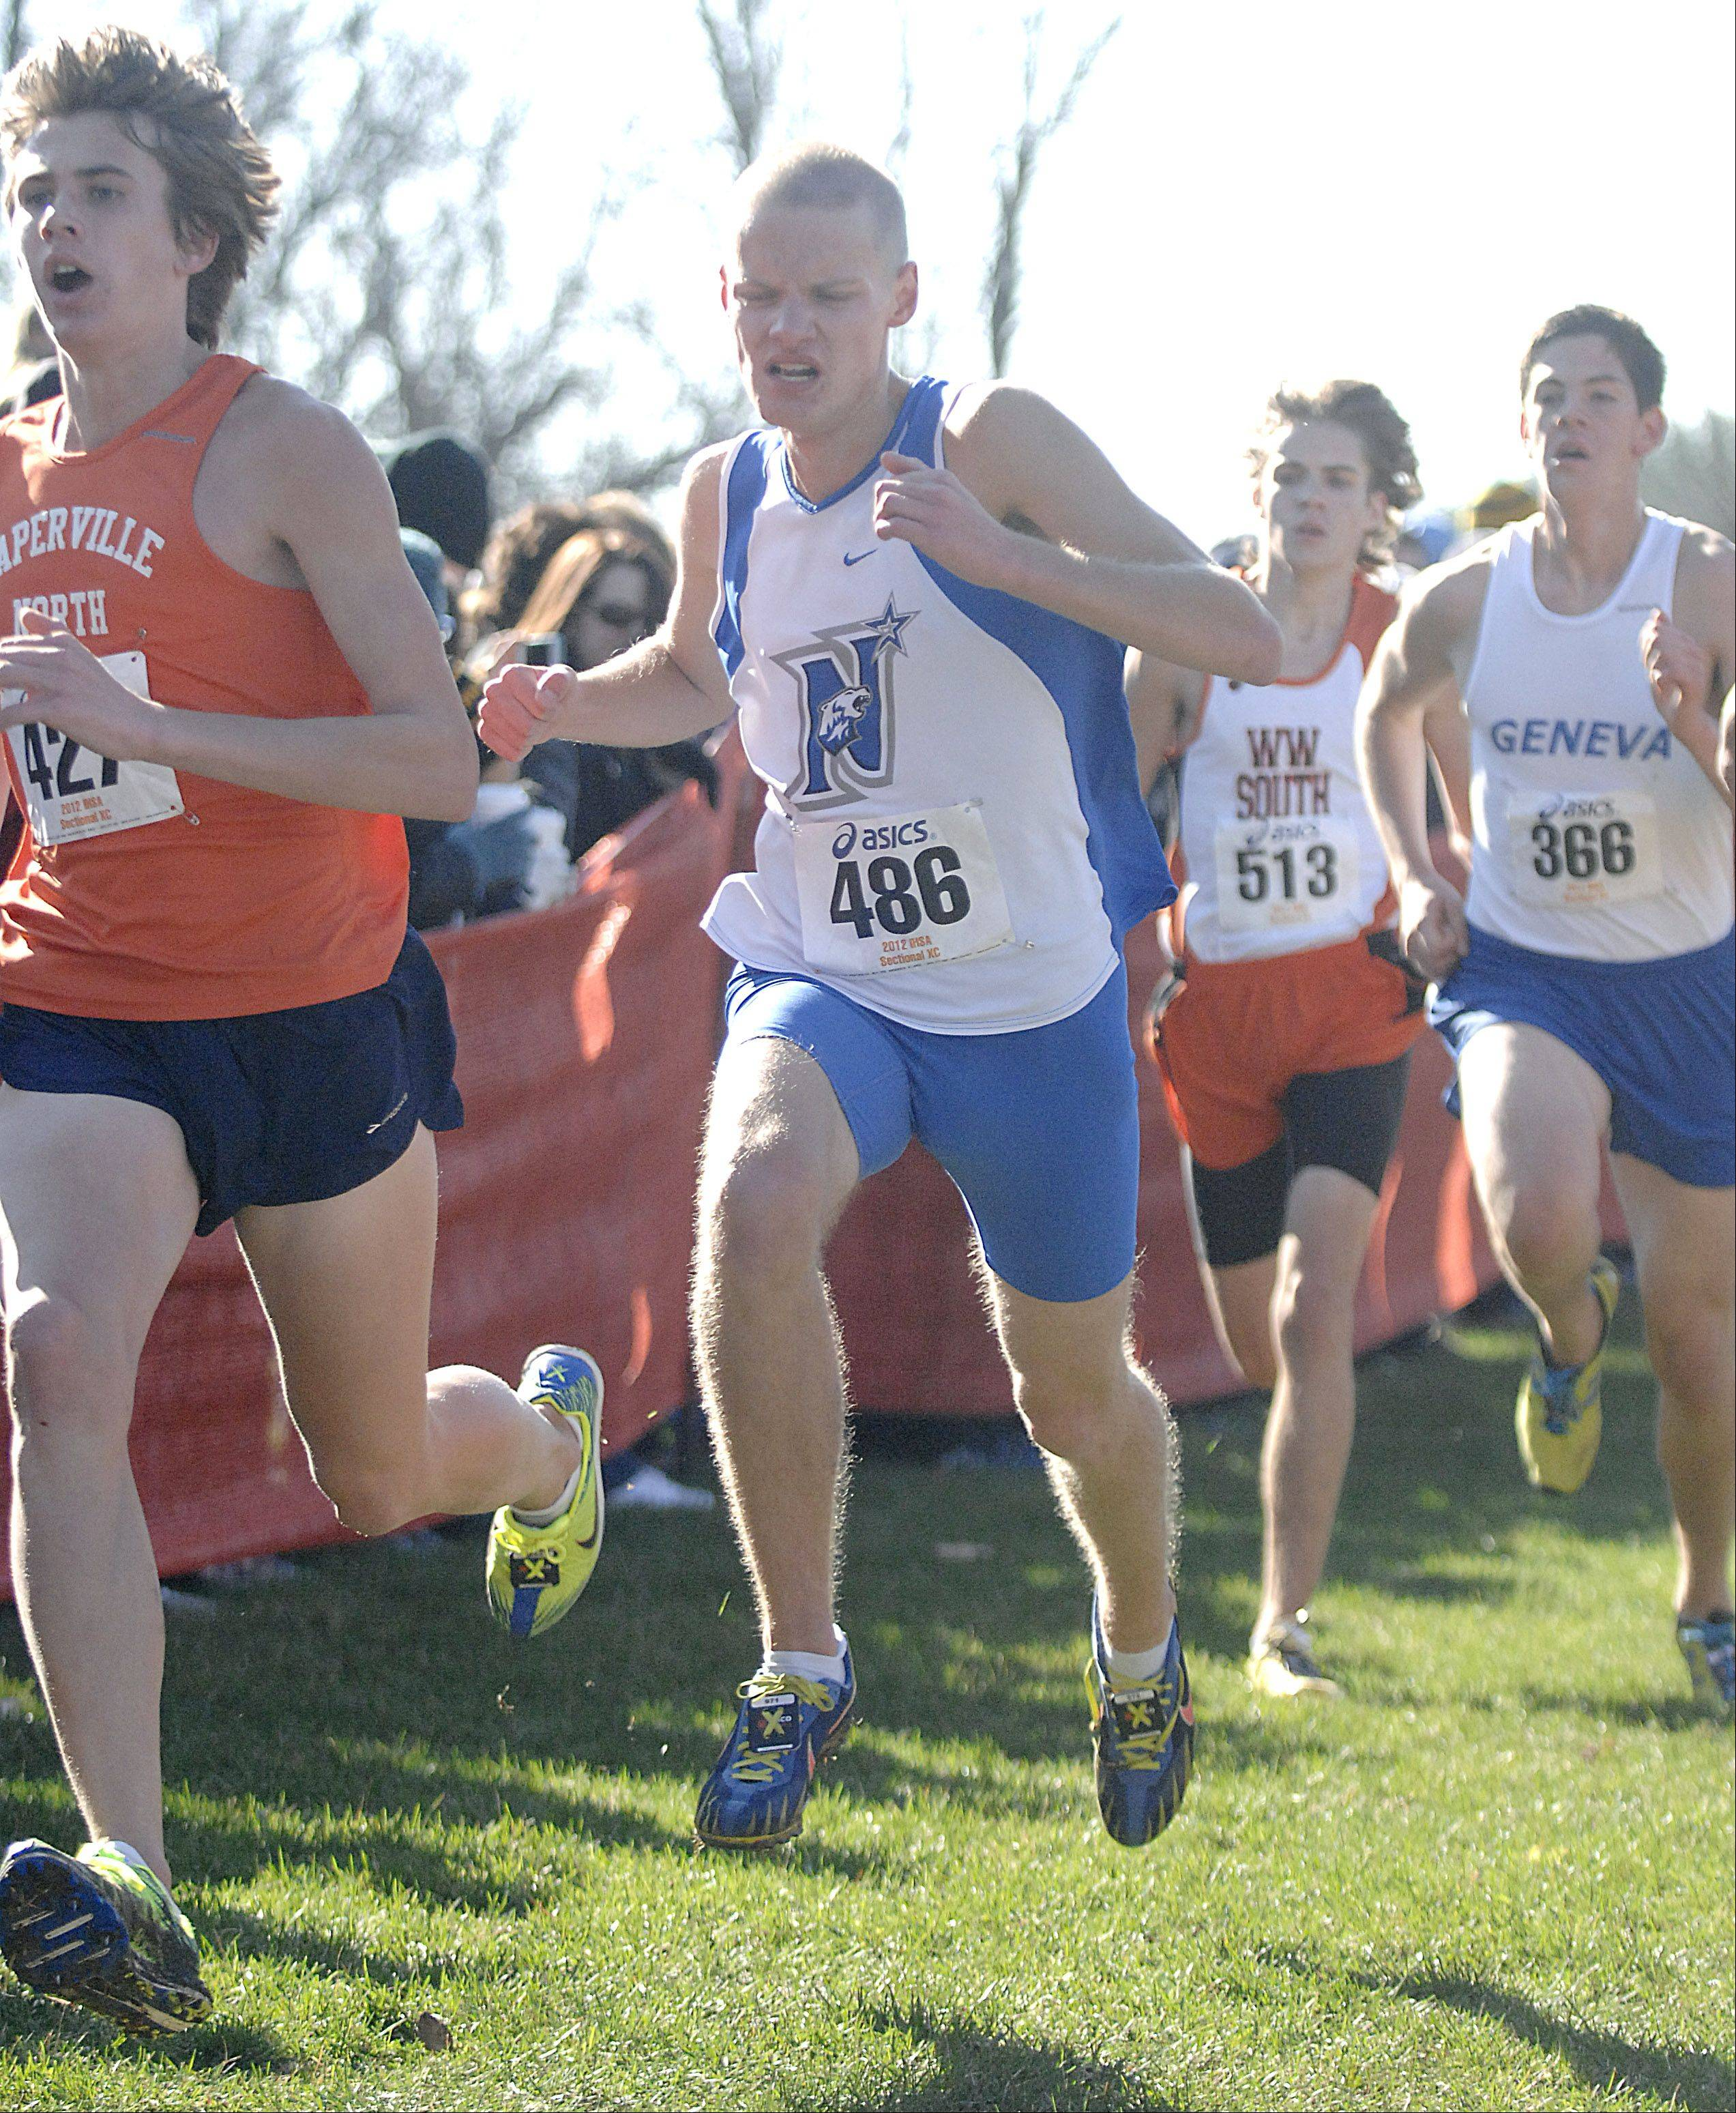 St. Charles North's Nick Vorger nears the finish line in the St. Charles East cross country sectional at LeRoy Oakes in St. Charles on Saturday, October 27.